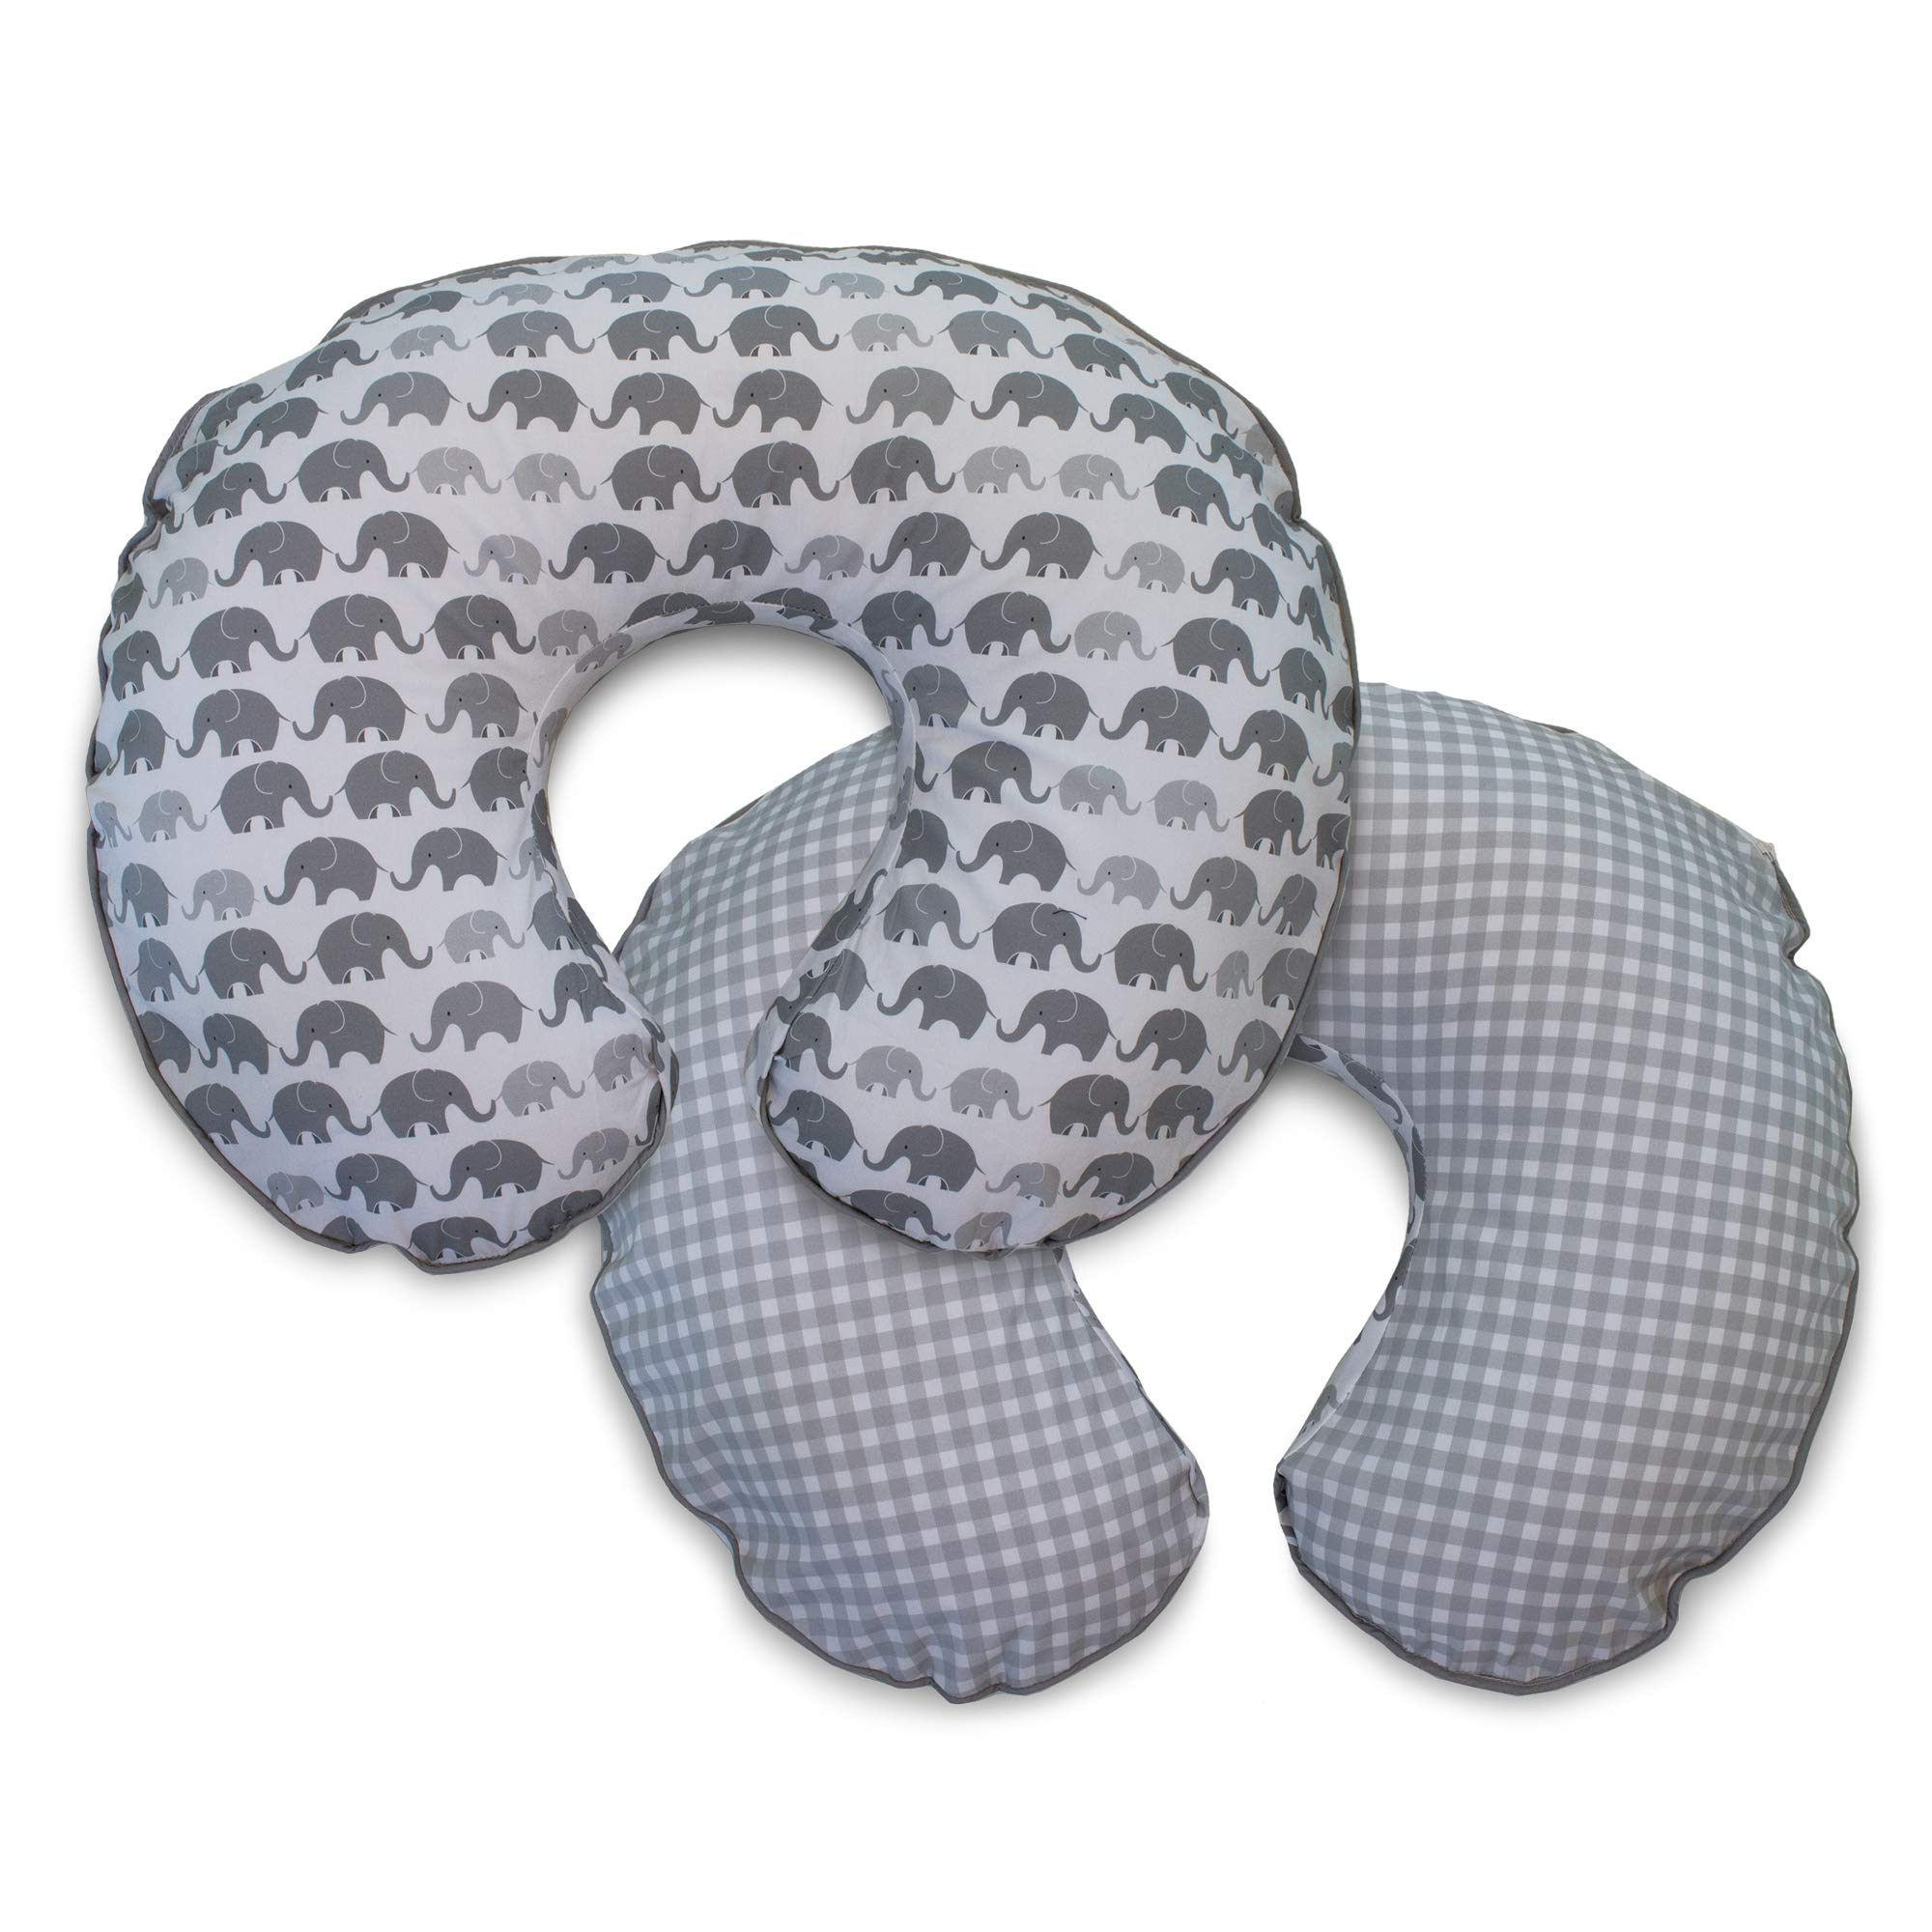 Boppy Premium Pillow Cover, Gray Elephants Plaid, Ultra-soft Microfiber Fabric in a fashionable two-sided design, Fits All Boppy Nursing Pillows and Positioners by Boppy